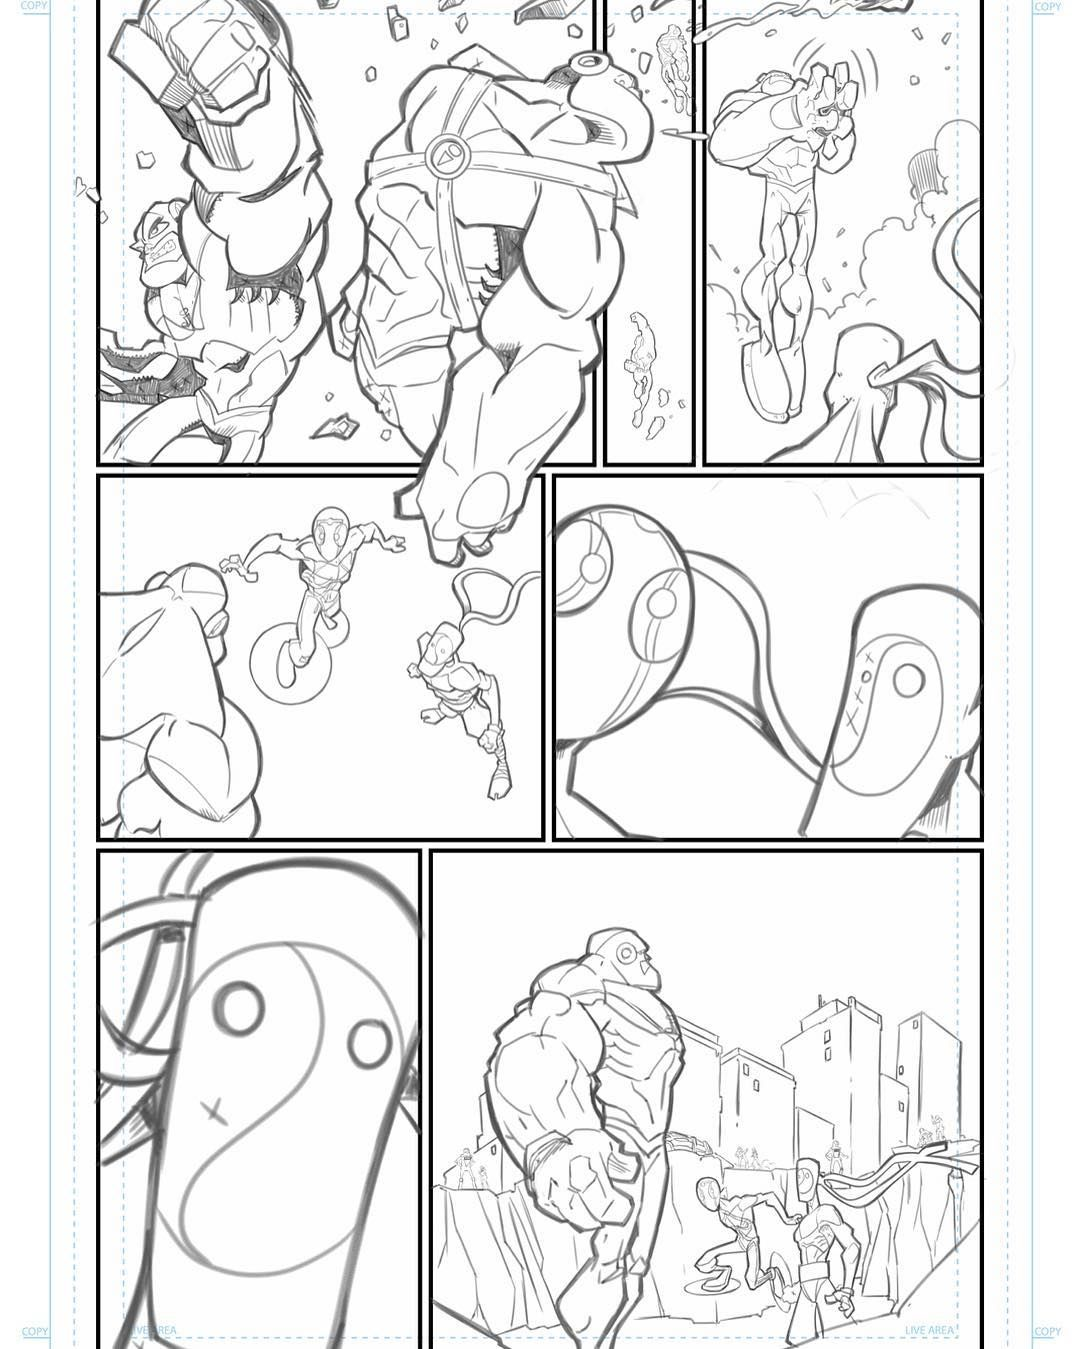 It's been a slow process with other projects keeping me busy but for those who are reading #theshowcomic here's the next page #digitalpencils  Just showing you guys a bit of my process.  Check out the FREE web comic. Link in my profile.  #HaroldGeorge #HaroArtist #comicart #sketch_dailies #comicbooks #sketch_dailies #sketching #comics #sketch #makingcomics #whatsup209 #turlockart #ijustwannadraw #drawing #instagood #instayourdrawing #indiecomics #doodles #artistsoninstagram